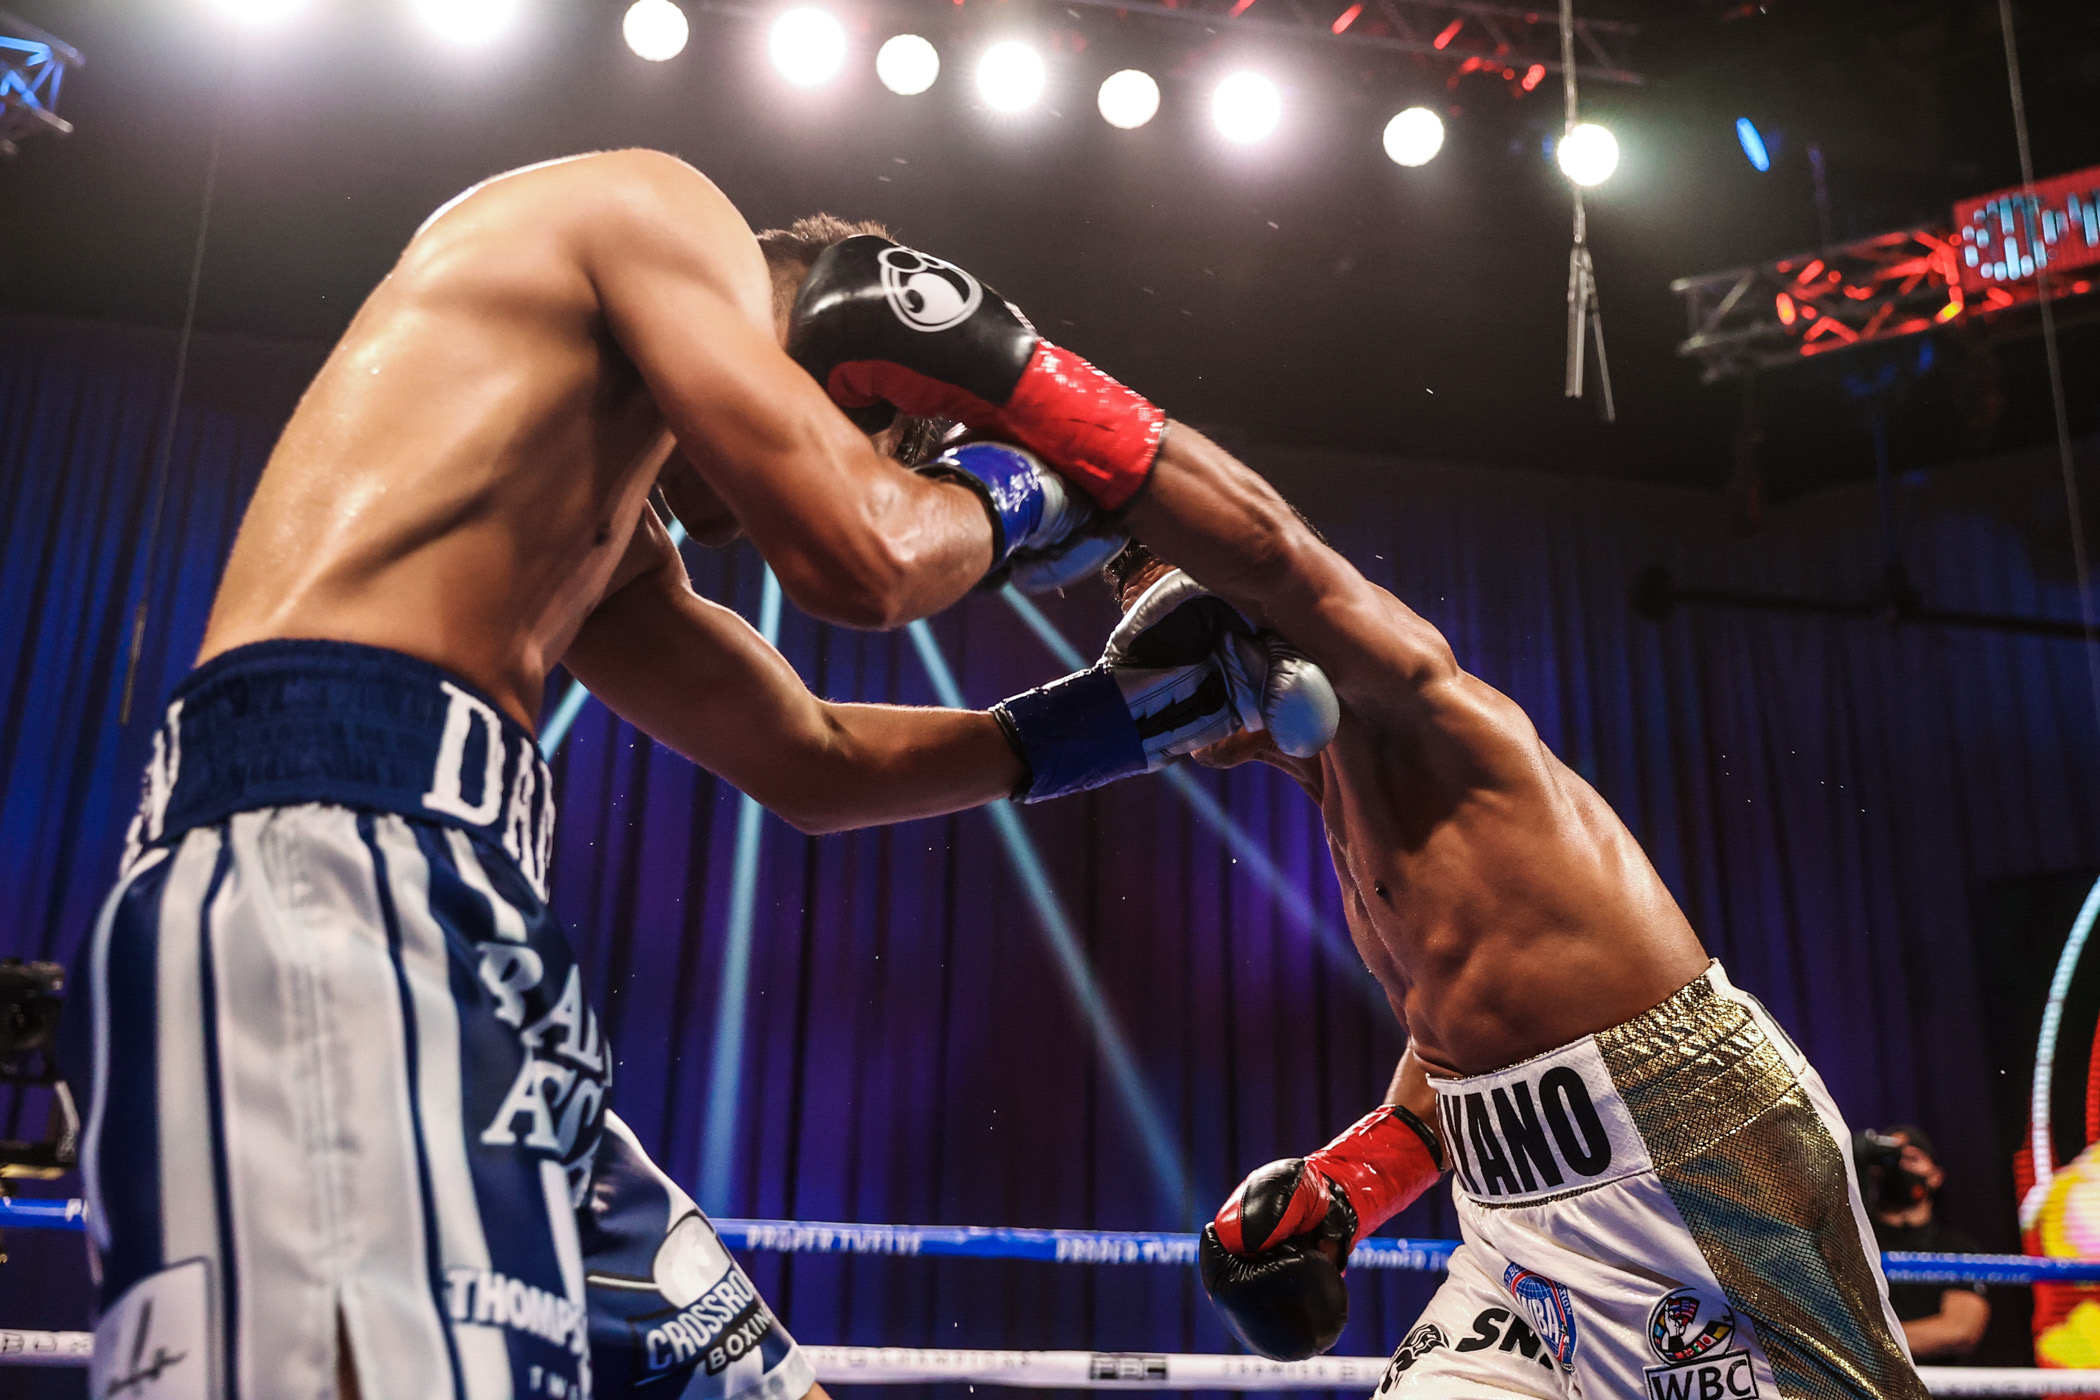 Payanp - Charlos Brother's Pay Per View Results: Roman Bests Payano On The Cards